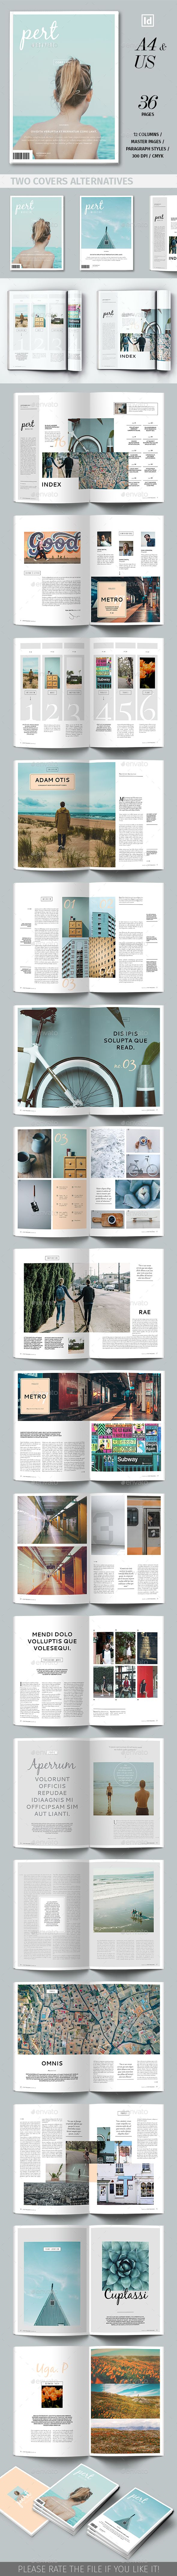 Pert Magazine Template — InDesign INDD #professional #multipurpose • Download ➝ https://graphicriver.net/item/pert-magazine-template/19707207?ref=pxcr